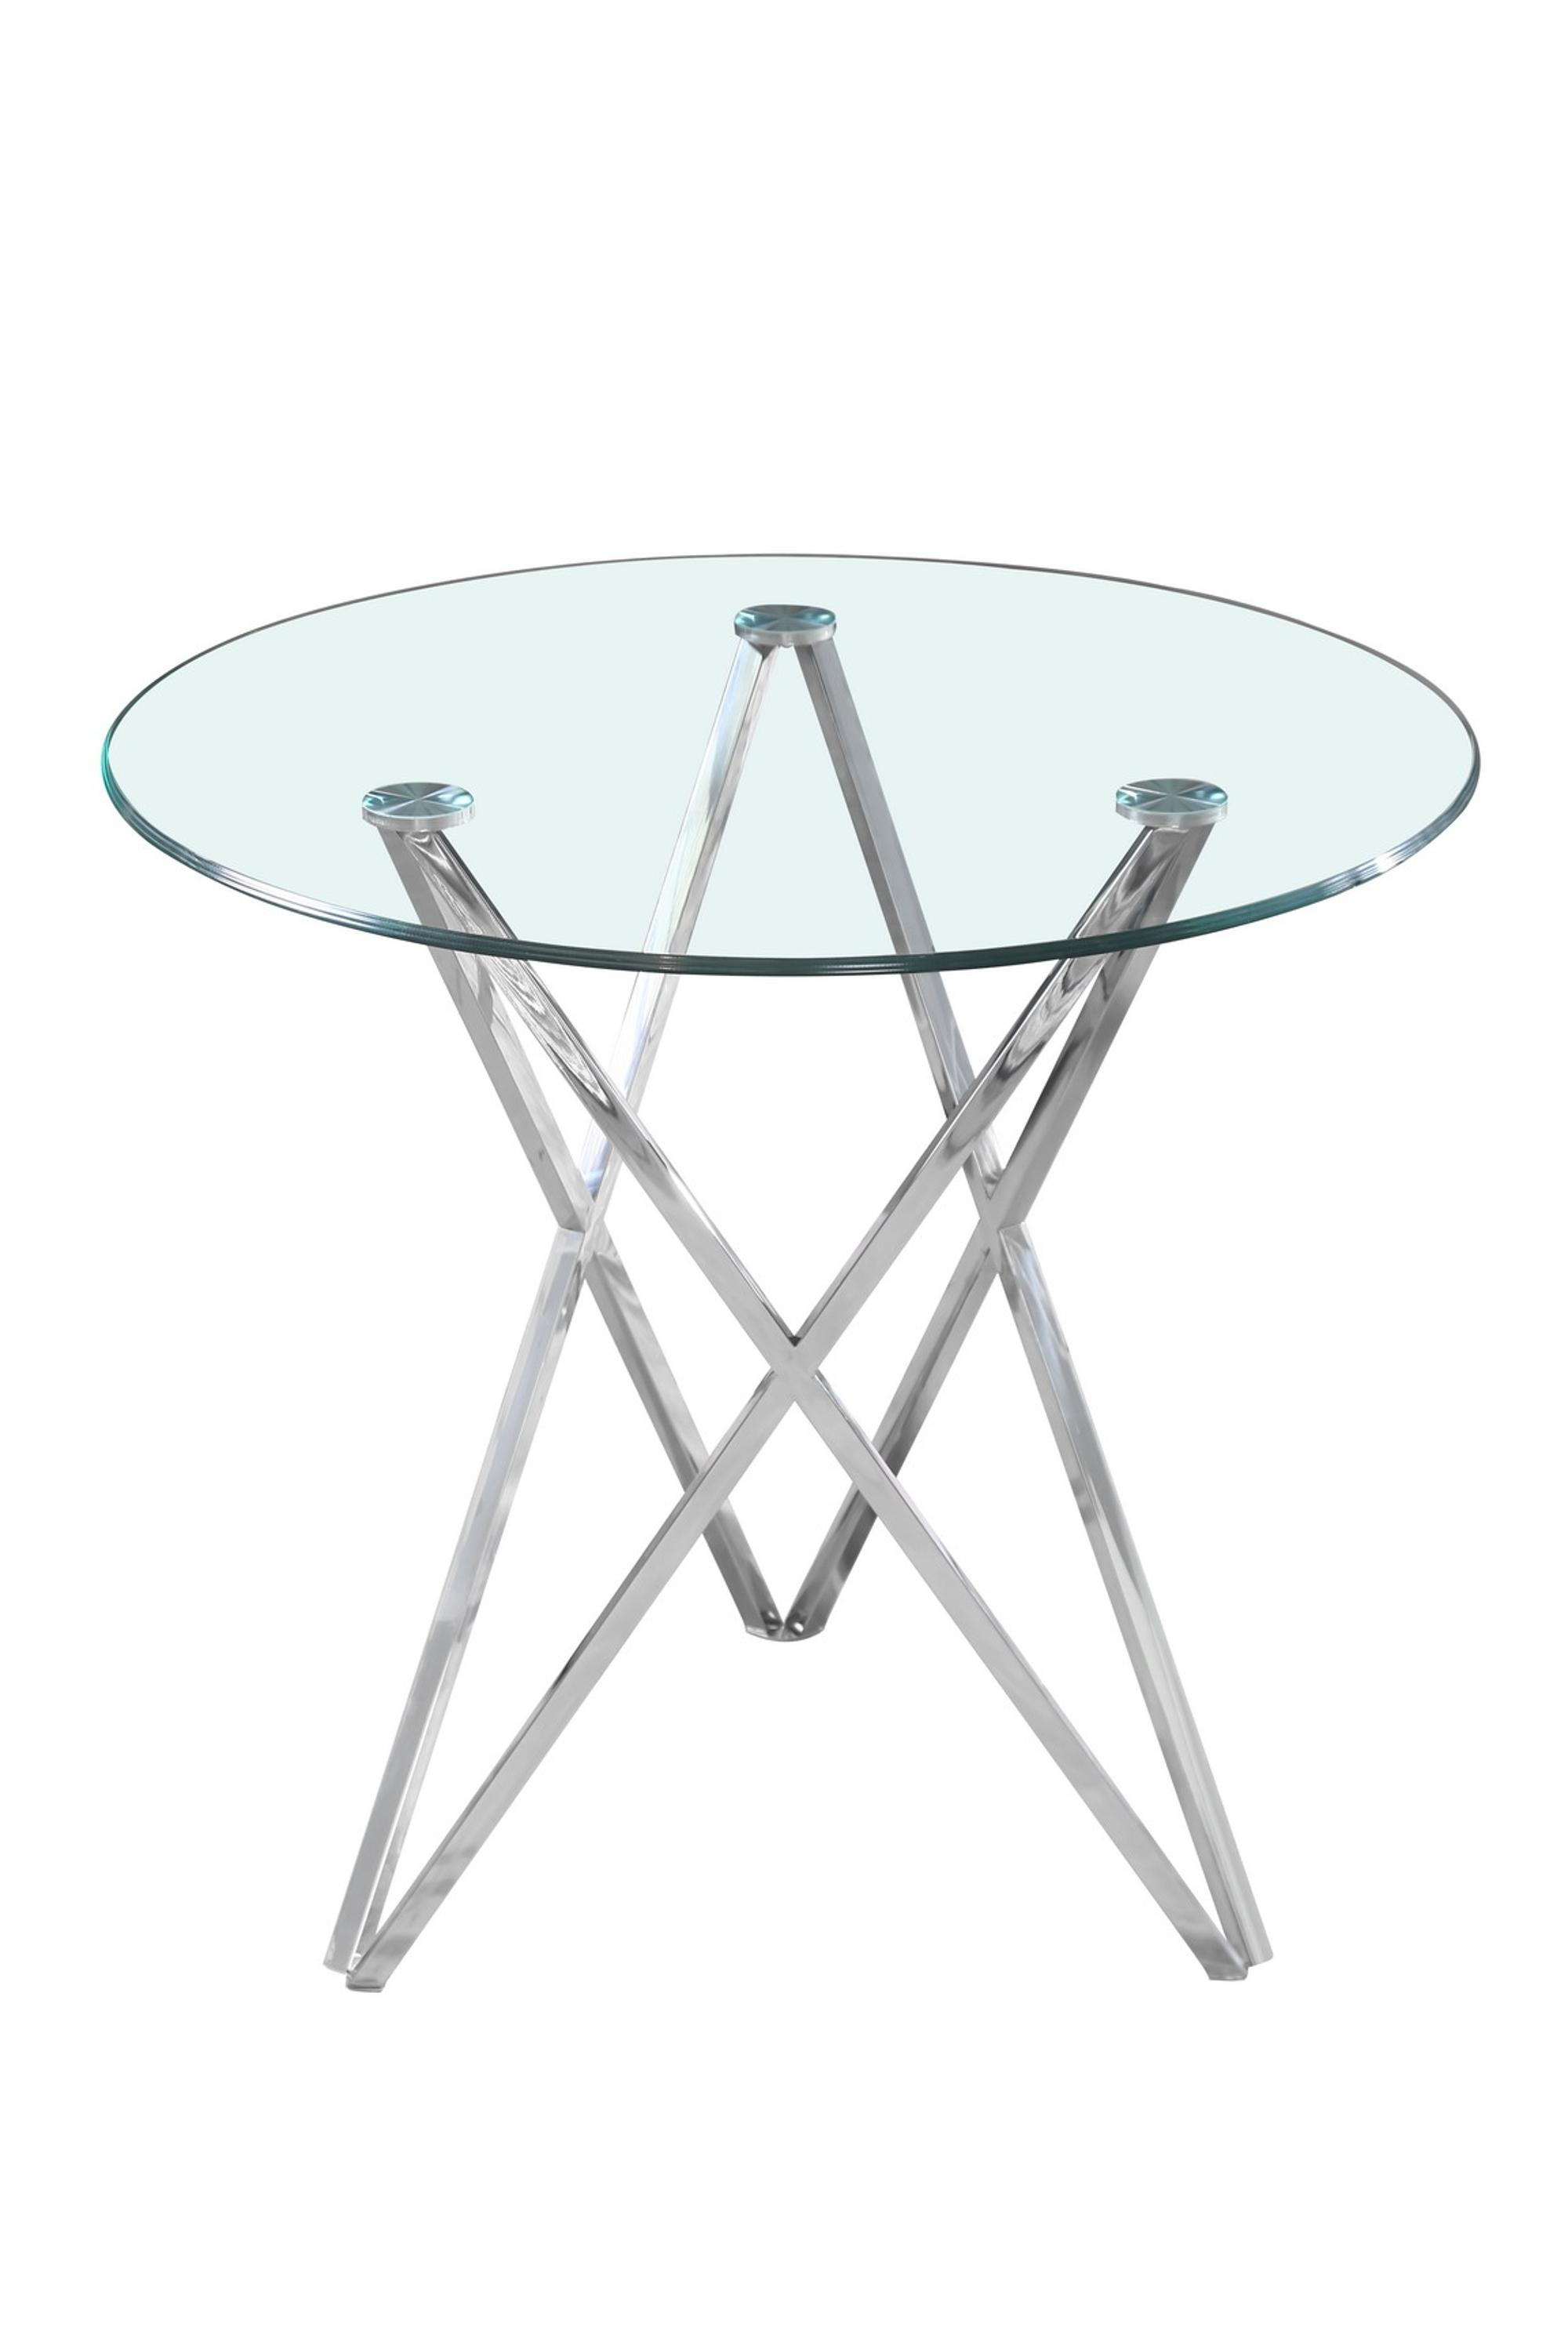 Dining Table Size For 6